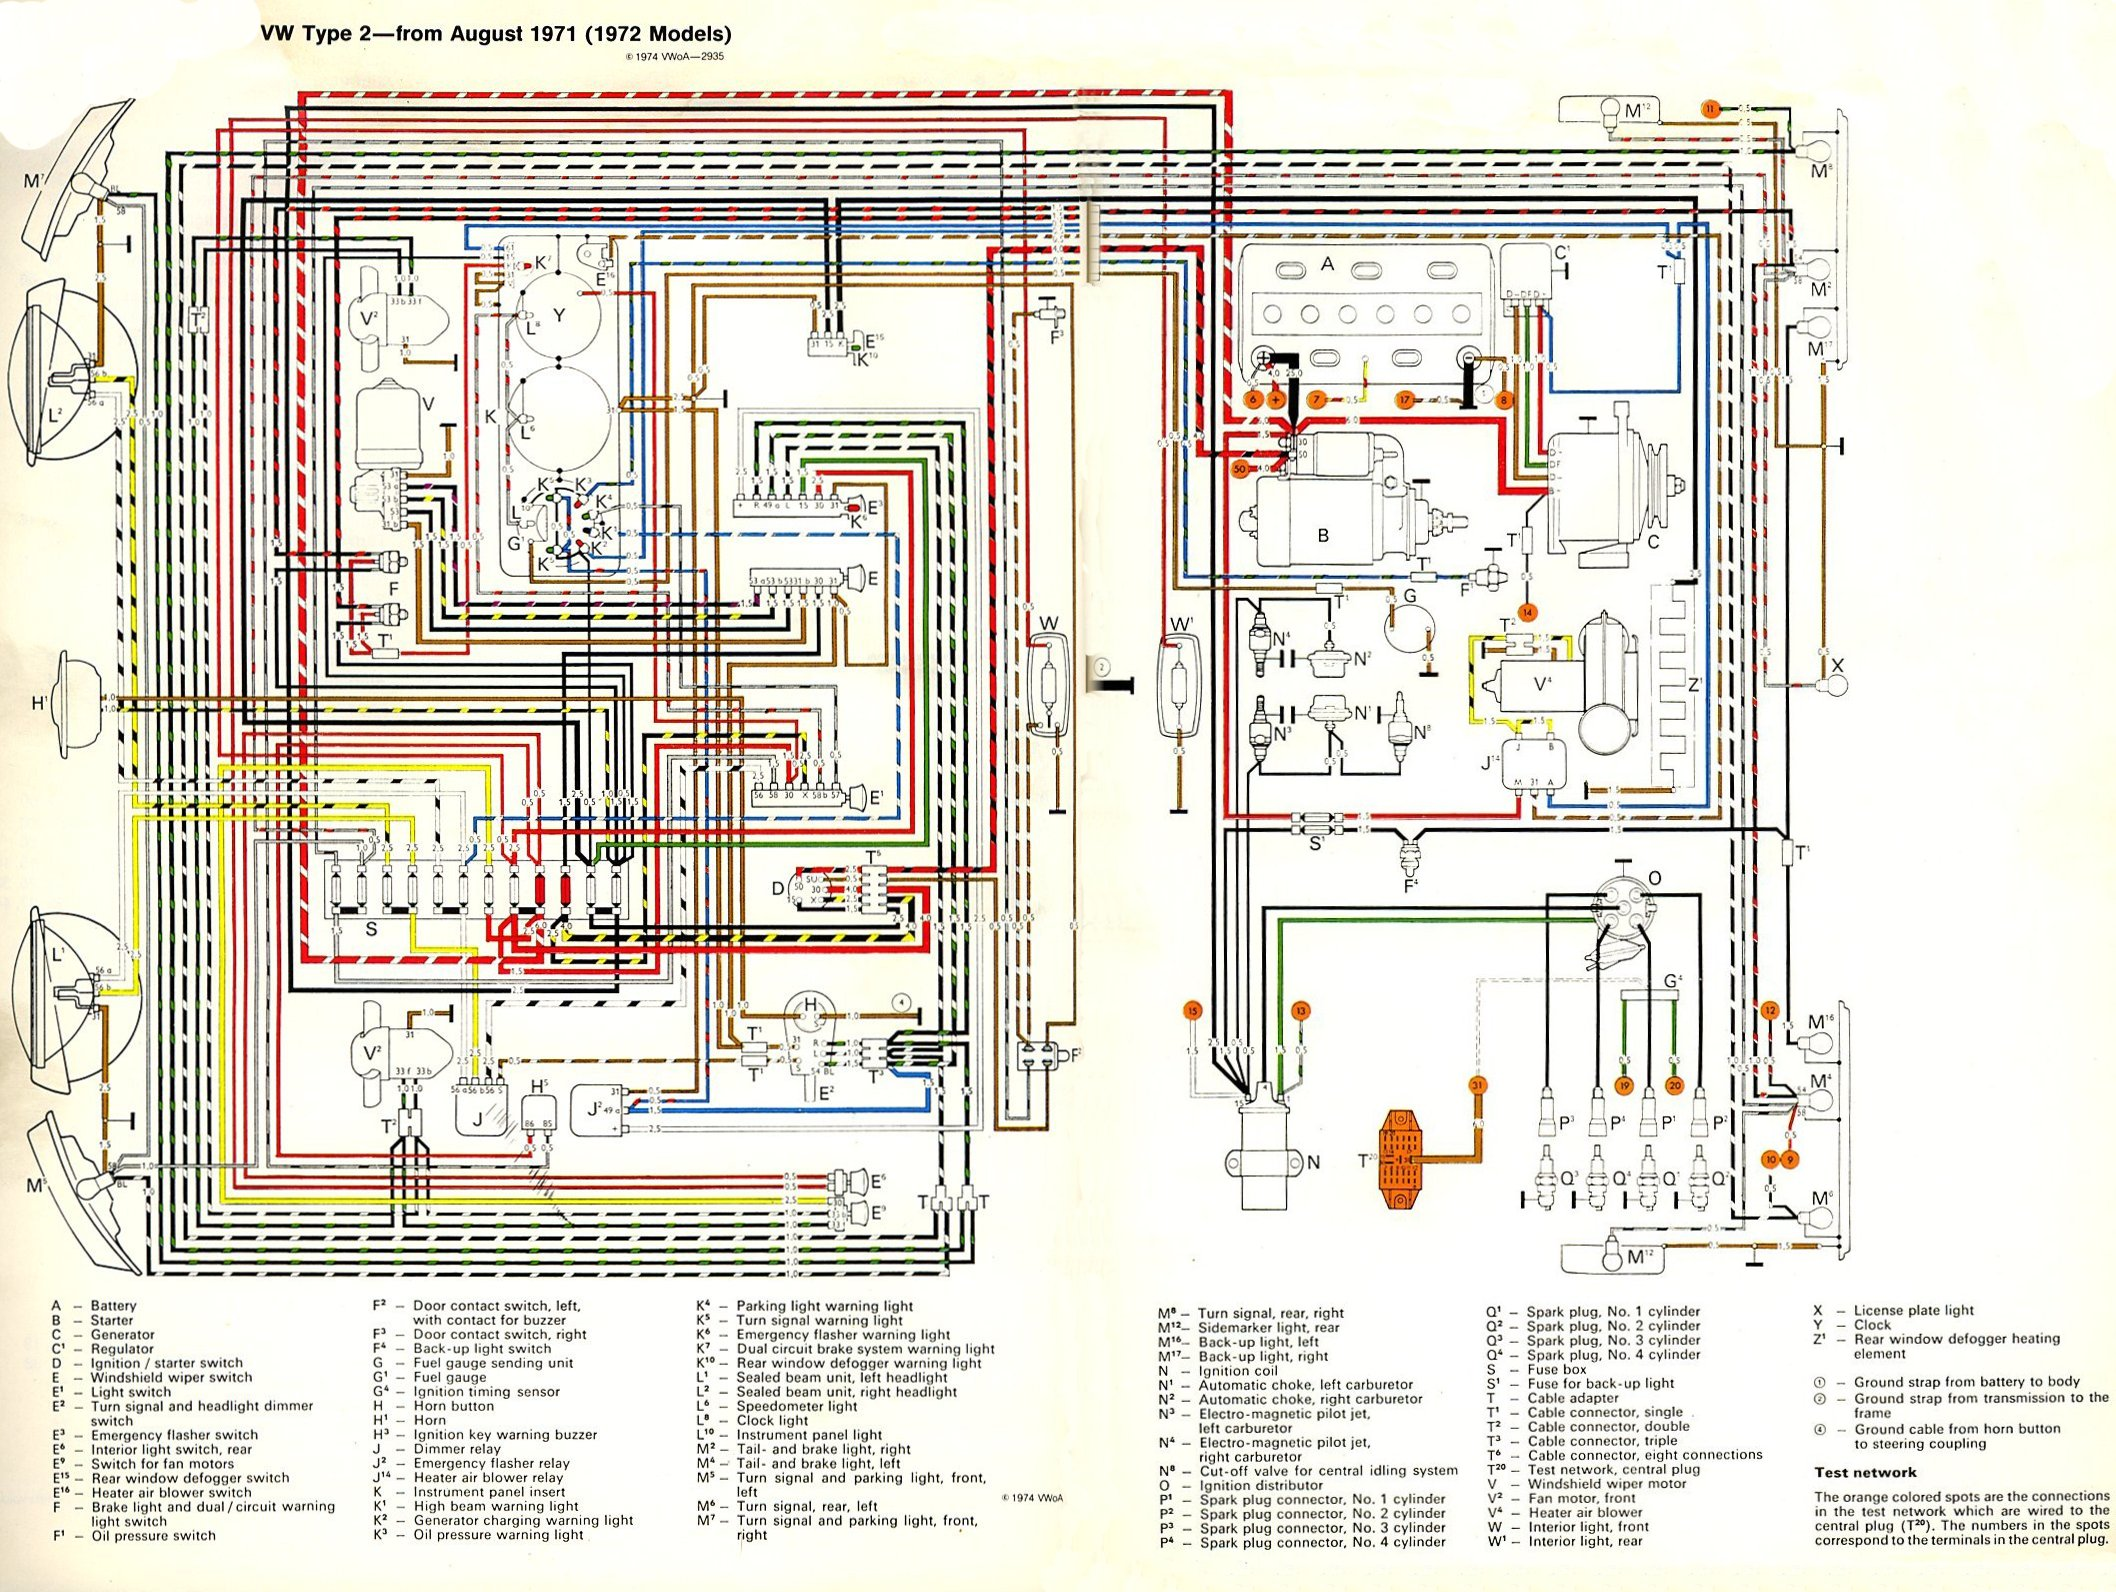 bus_1972_wiring 1977 porsche 911 wiring diagram wiring diagram simonand vw t5 forum wiring diagram at bakdesigns.co